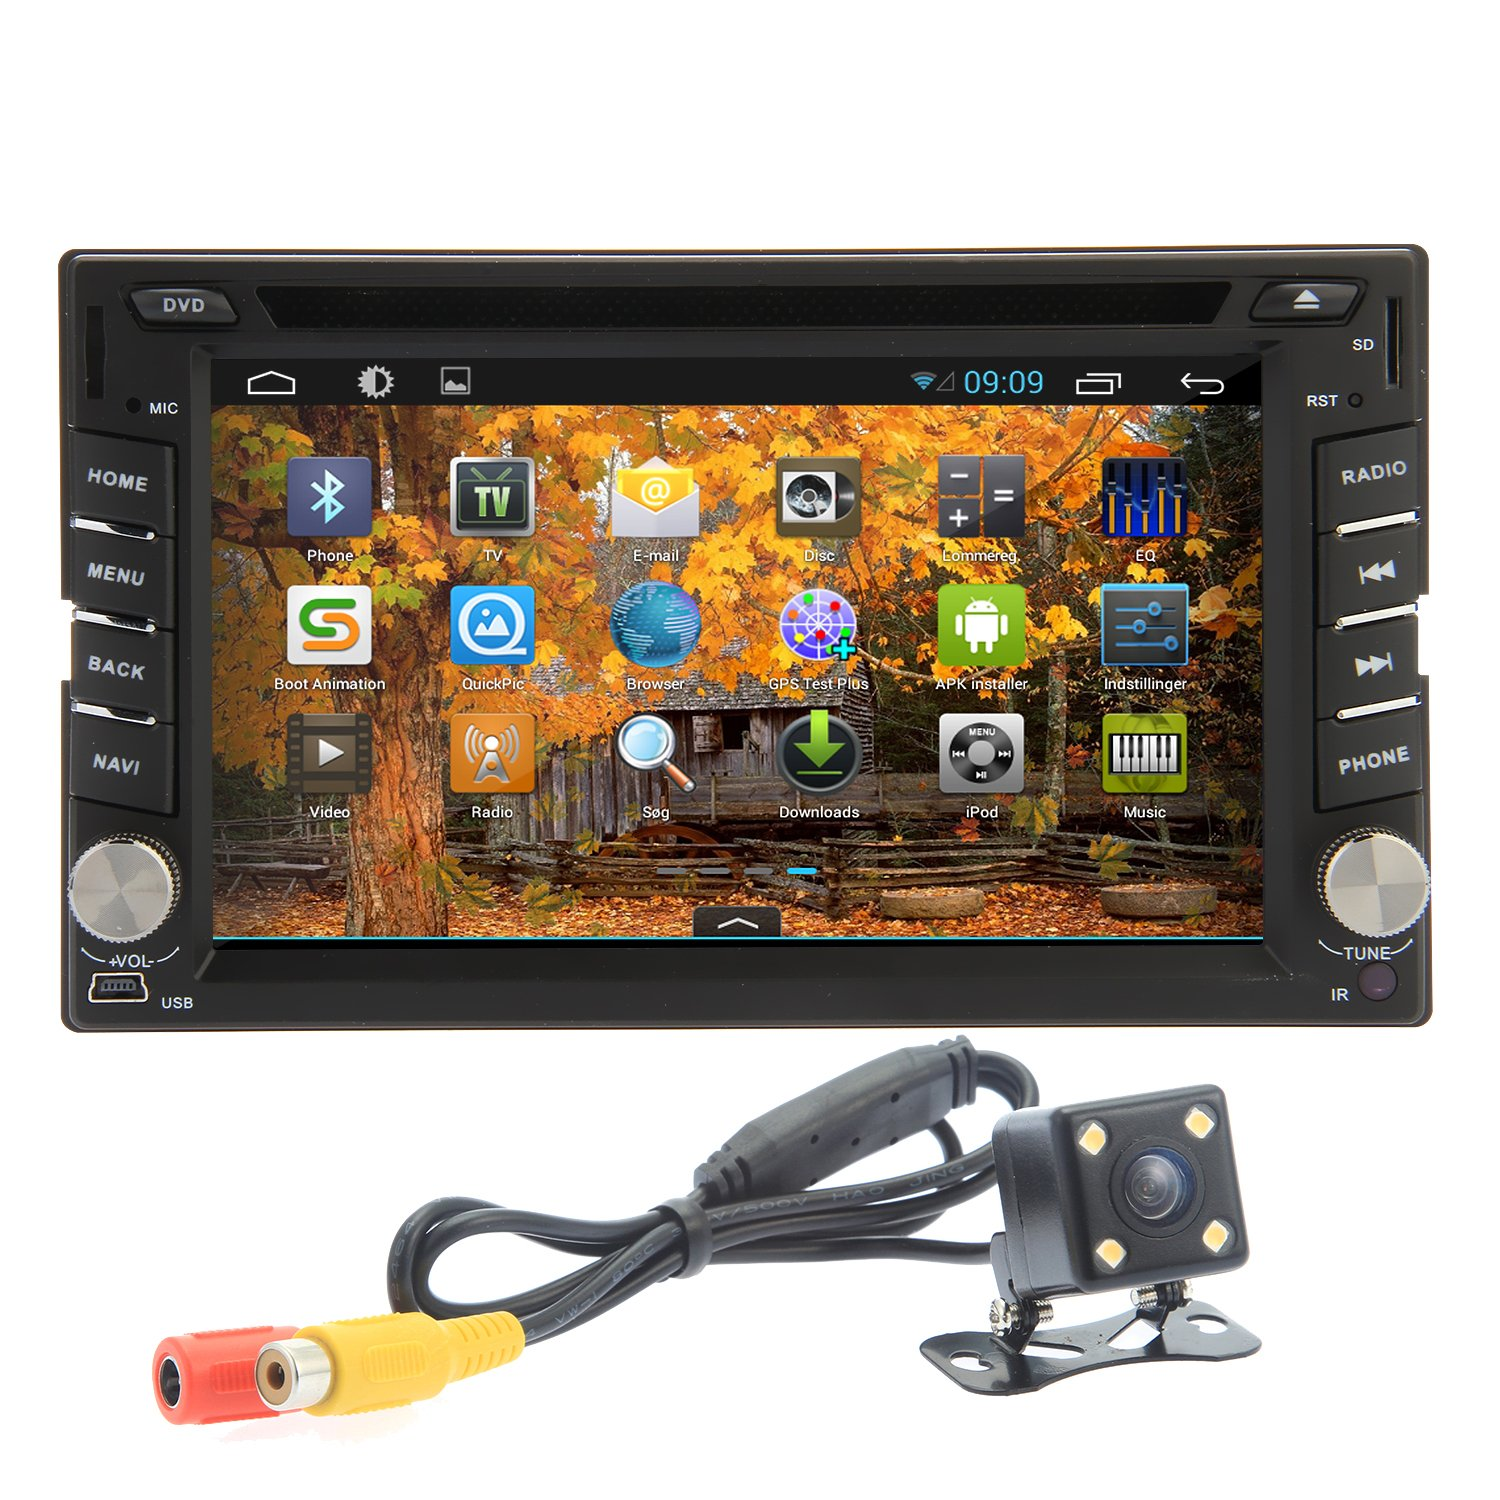 Amazoncom Oukurear Camera Included 2015 Best Sellers 3d Android Ouku Car Stereo Wire Harness 42 Double Din 62 Inch Capacitive Touch Screen Dvd Player Radio In Dash Gps